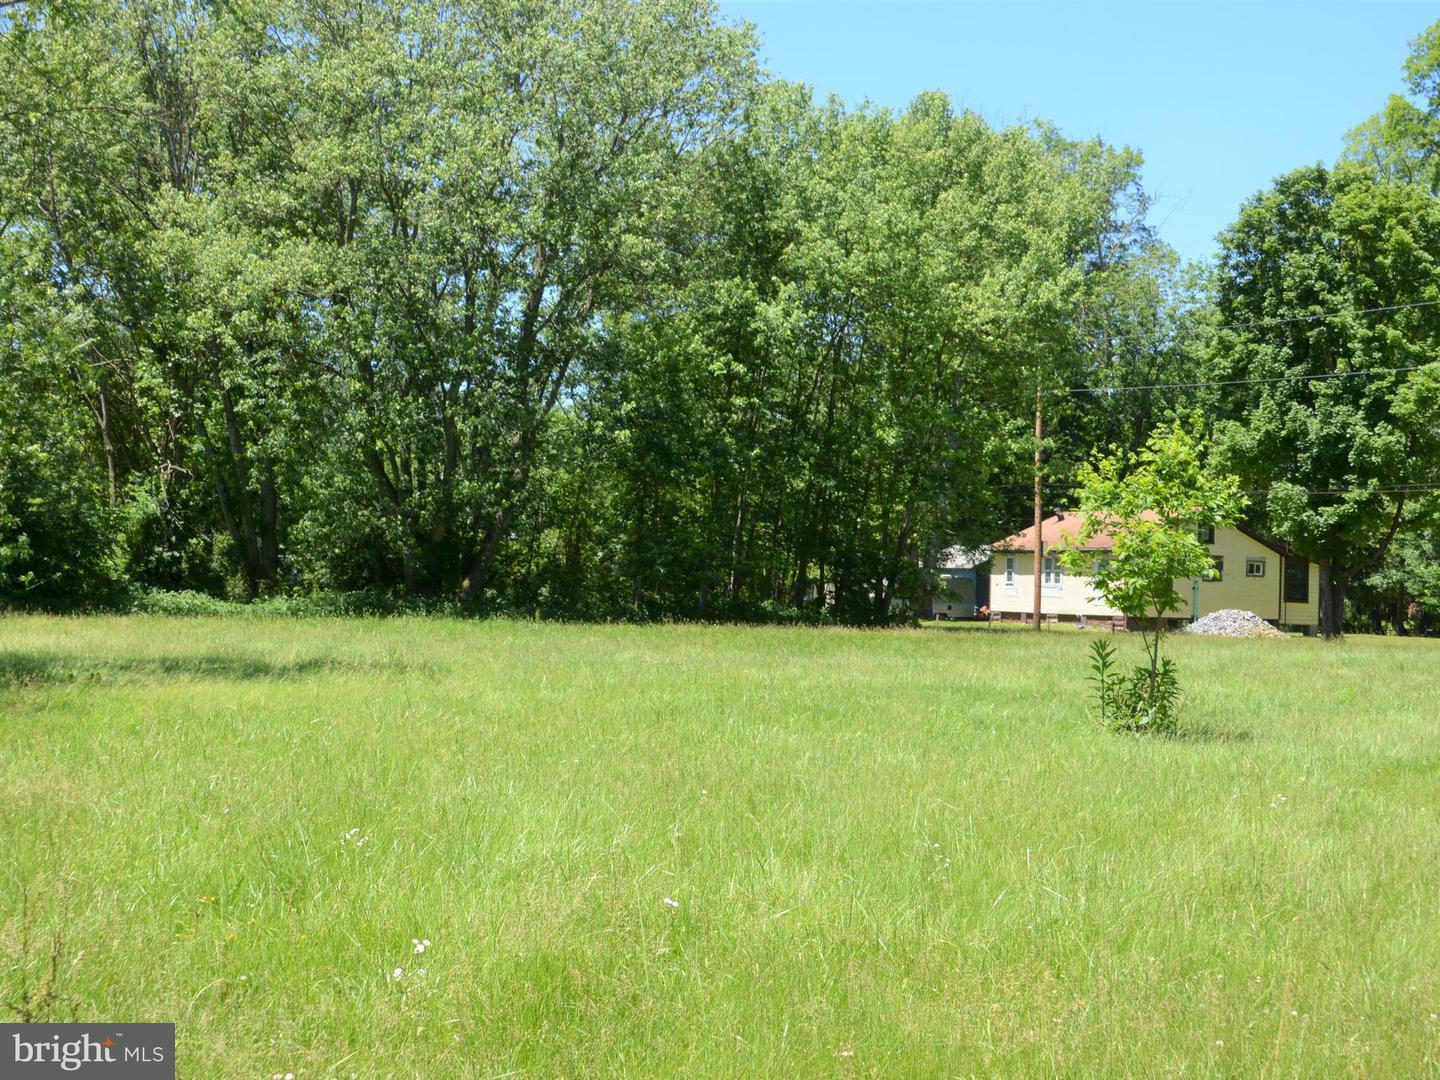 Land for Sale at 0 Whispering Willow Lane Bedford, Pennsylvania 15522 United States